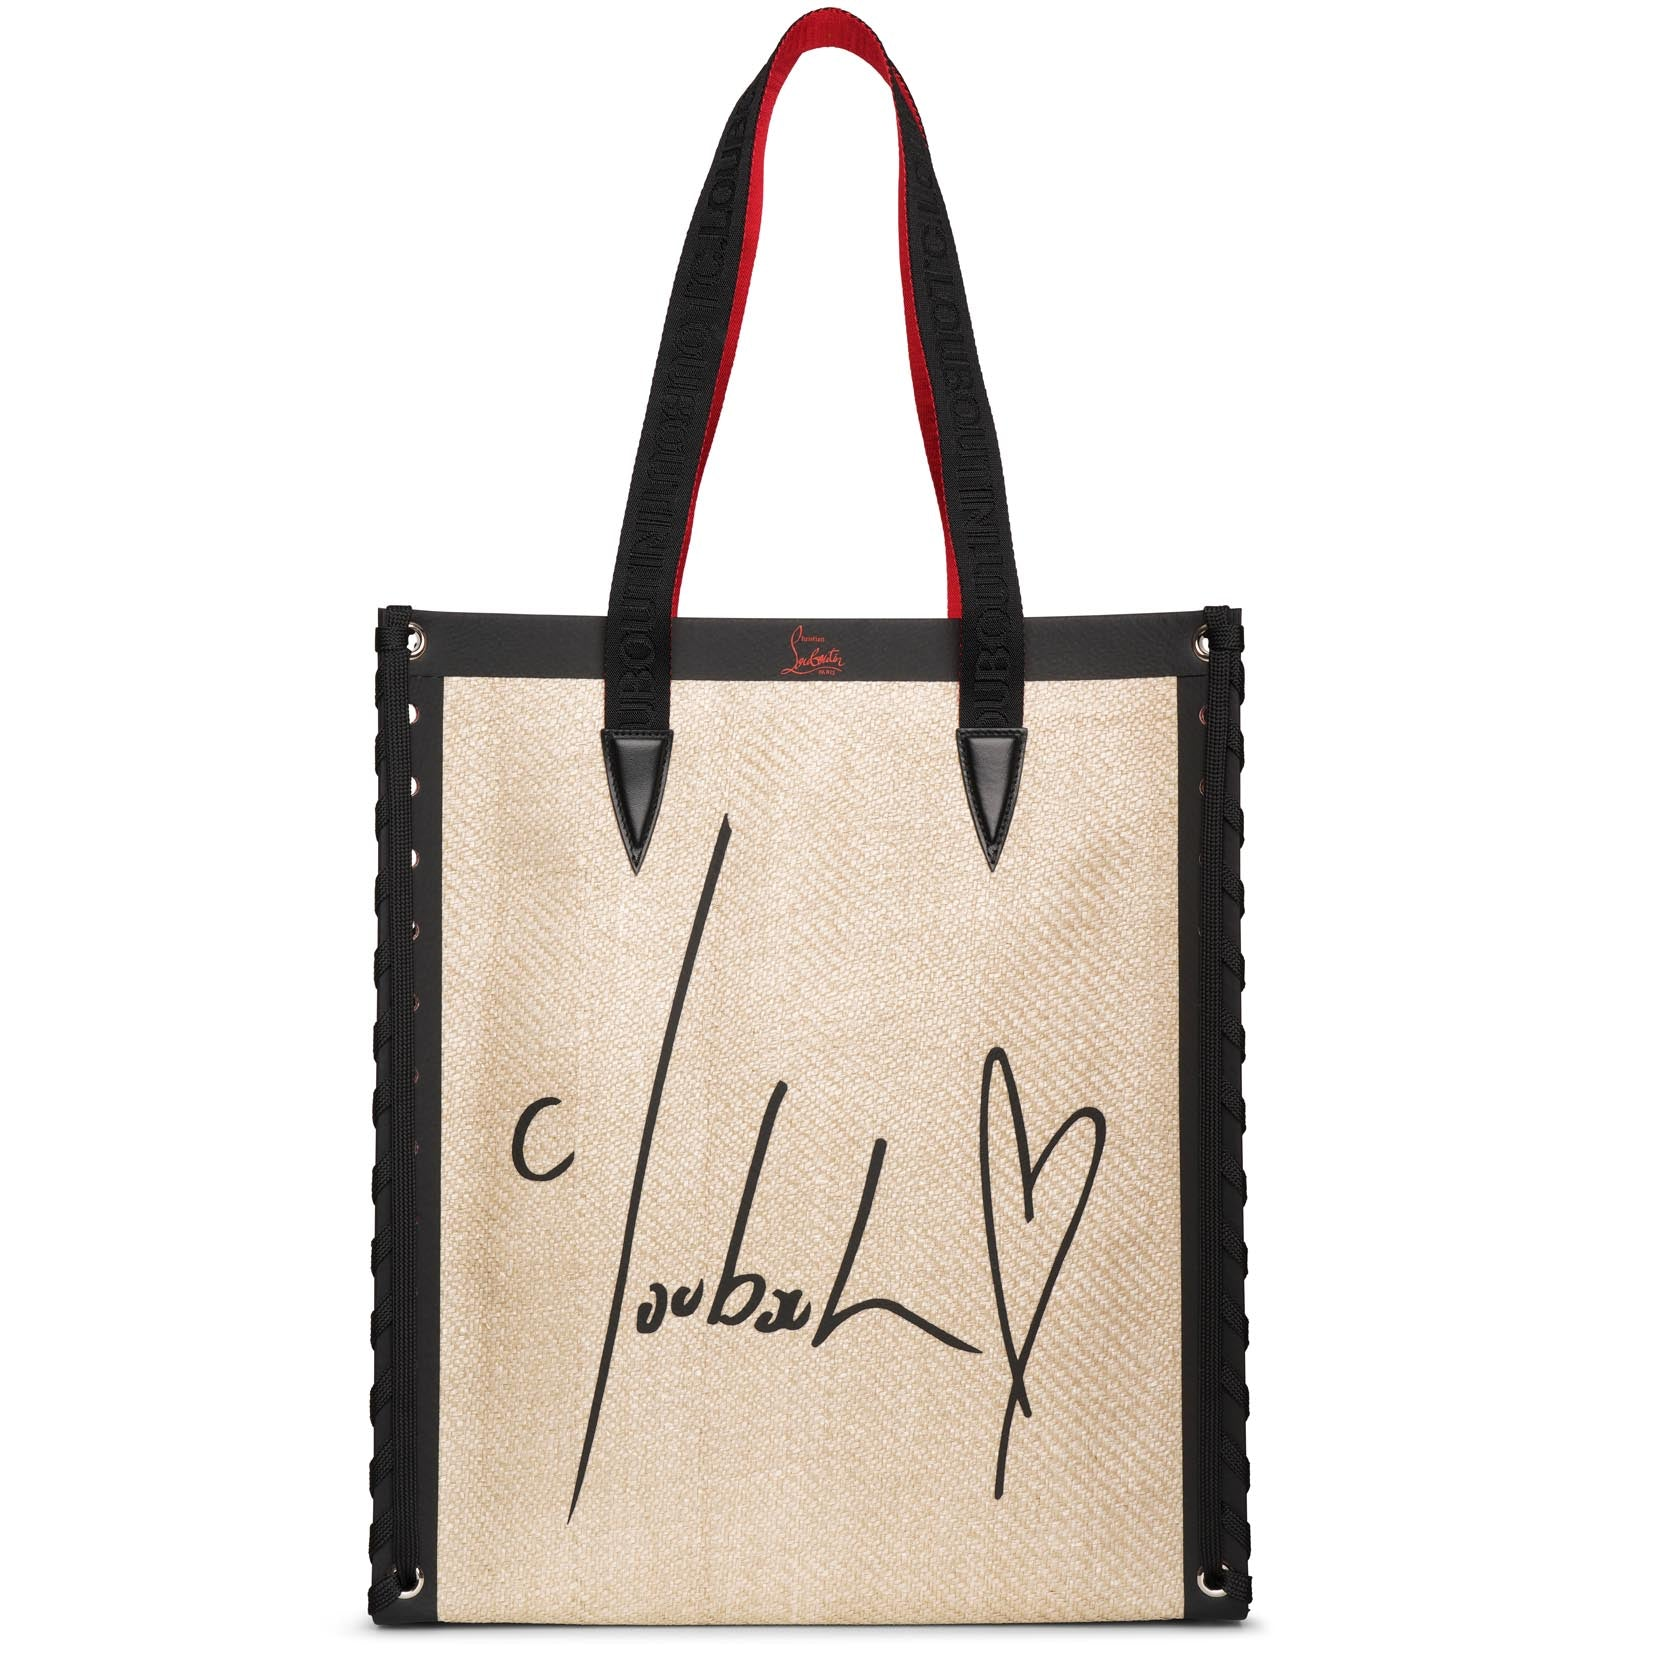 Christian Louboutin Canvases Cabalace Small canvas tote bag